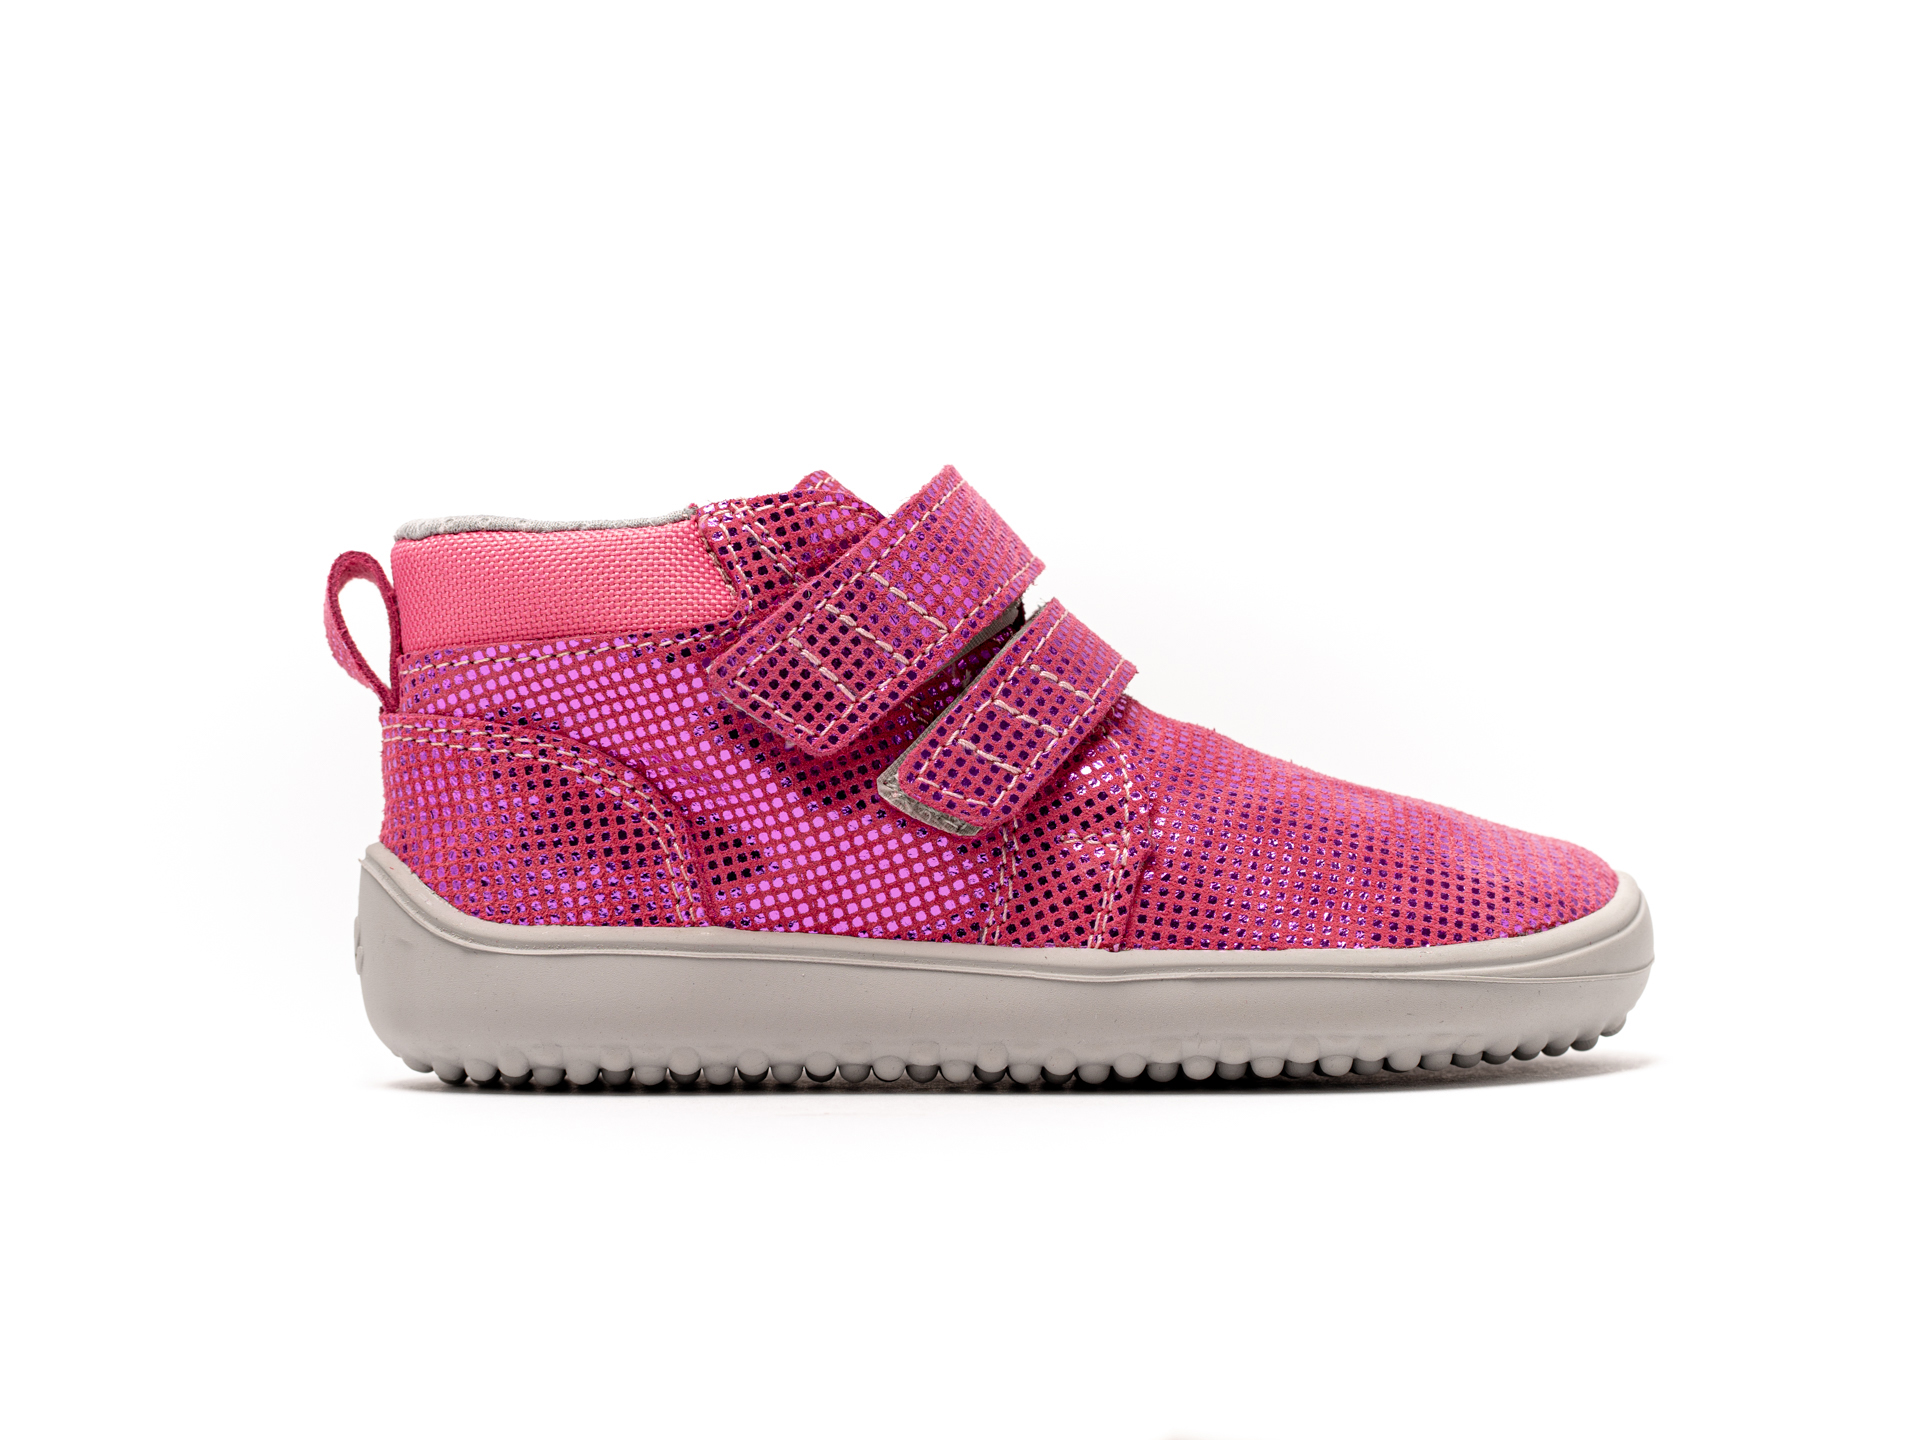 Kinder Barfussschuhe Be Lenka Play - Sparkle 34